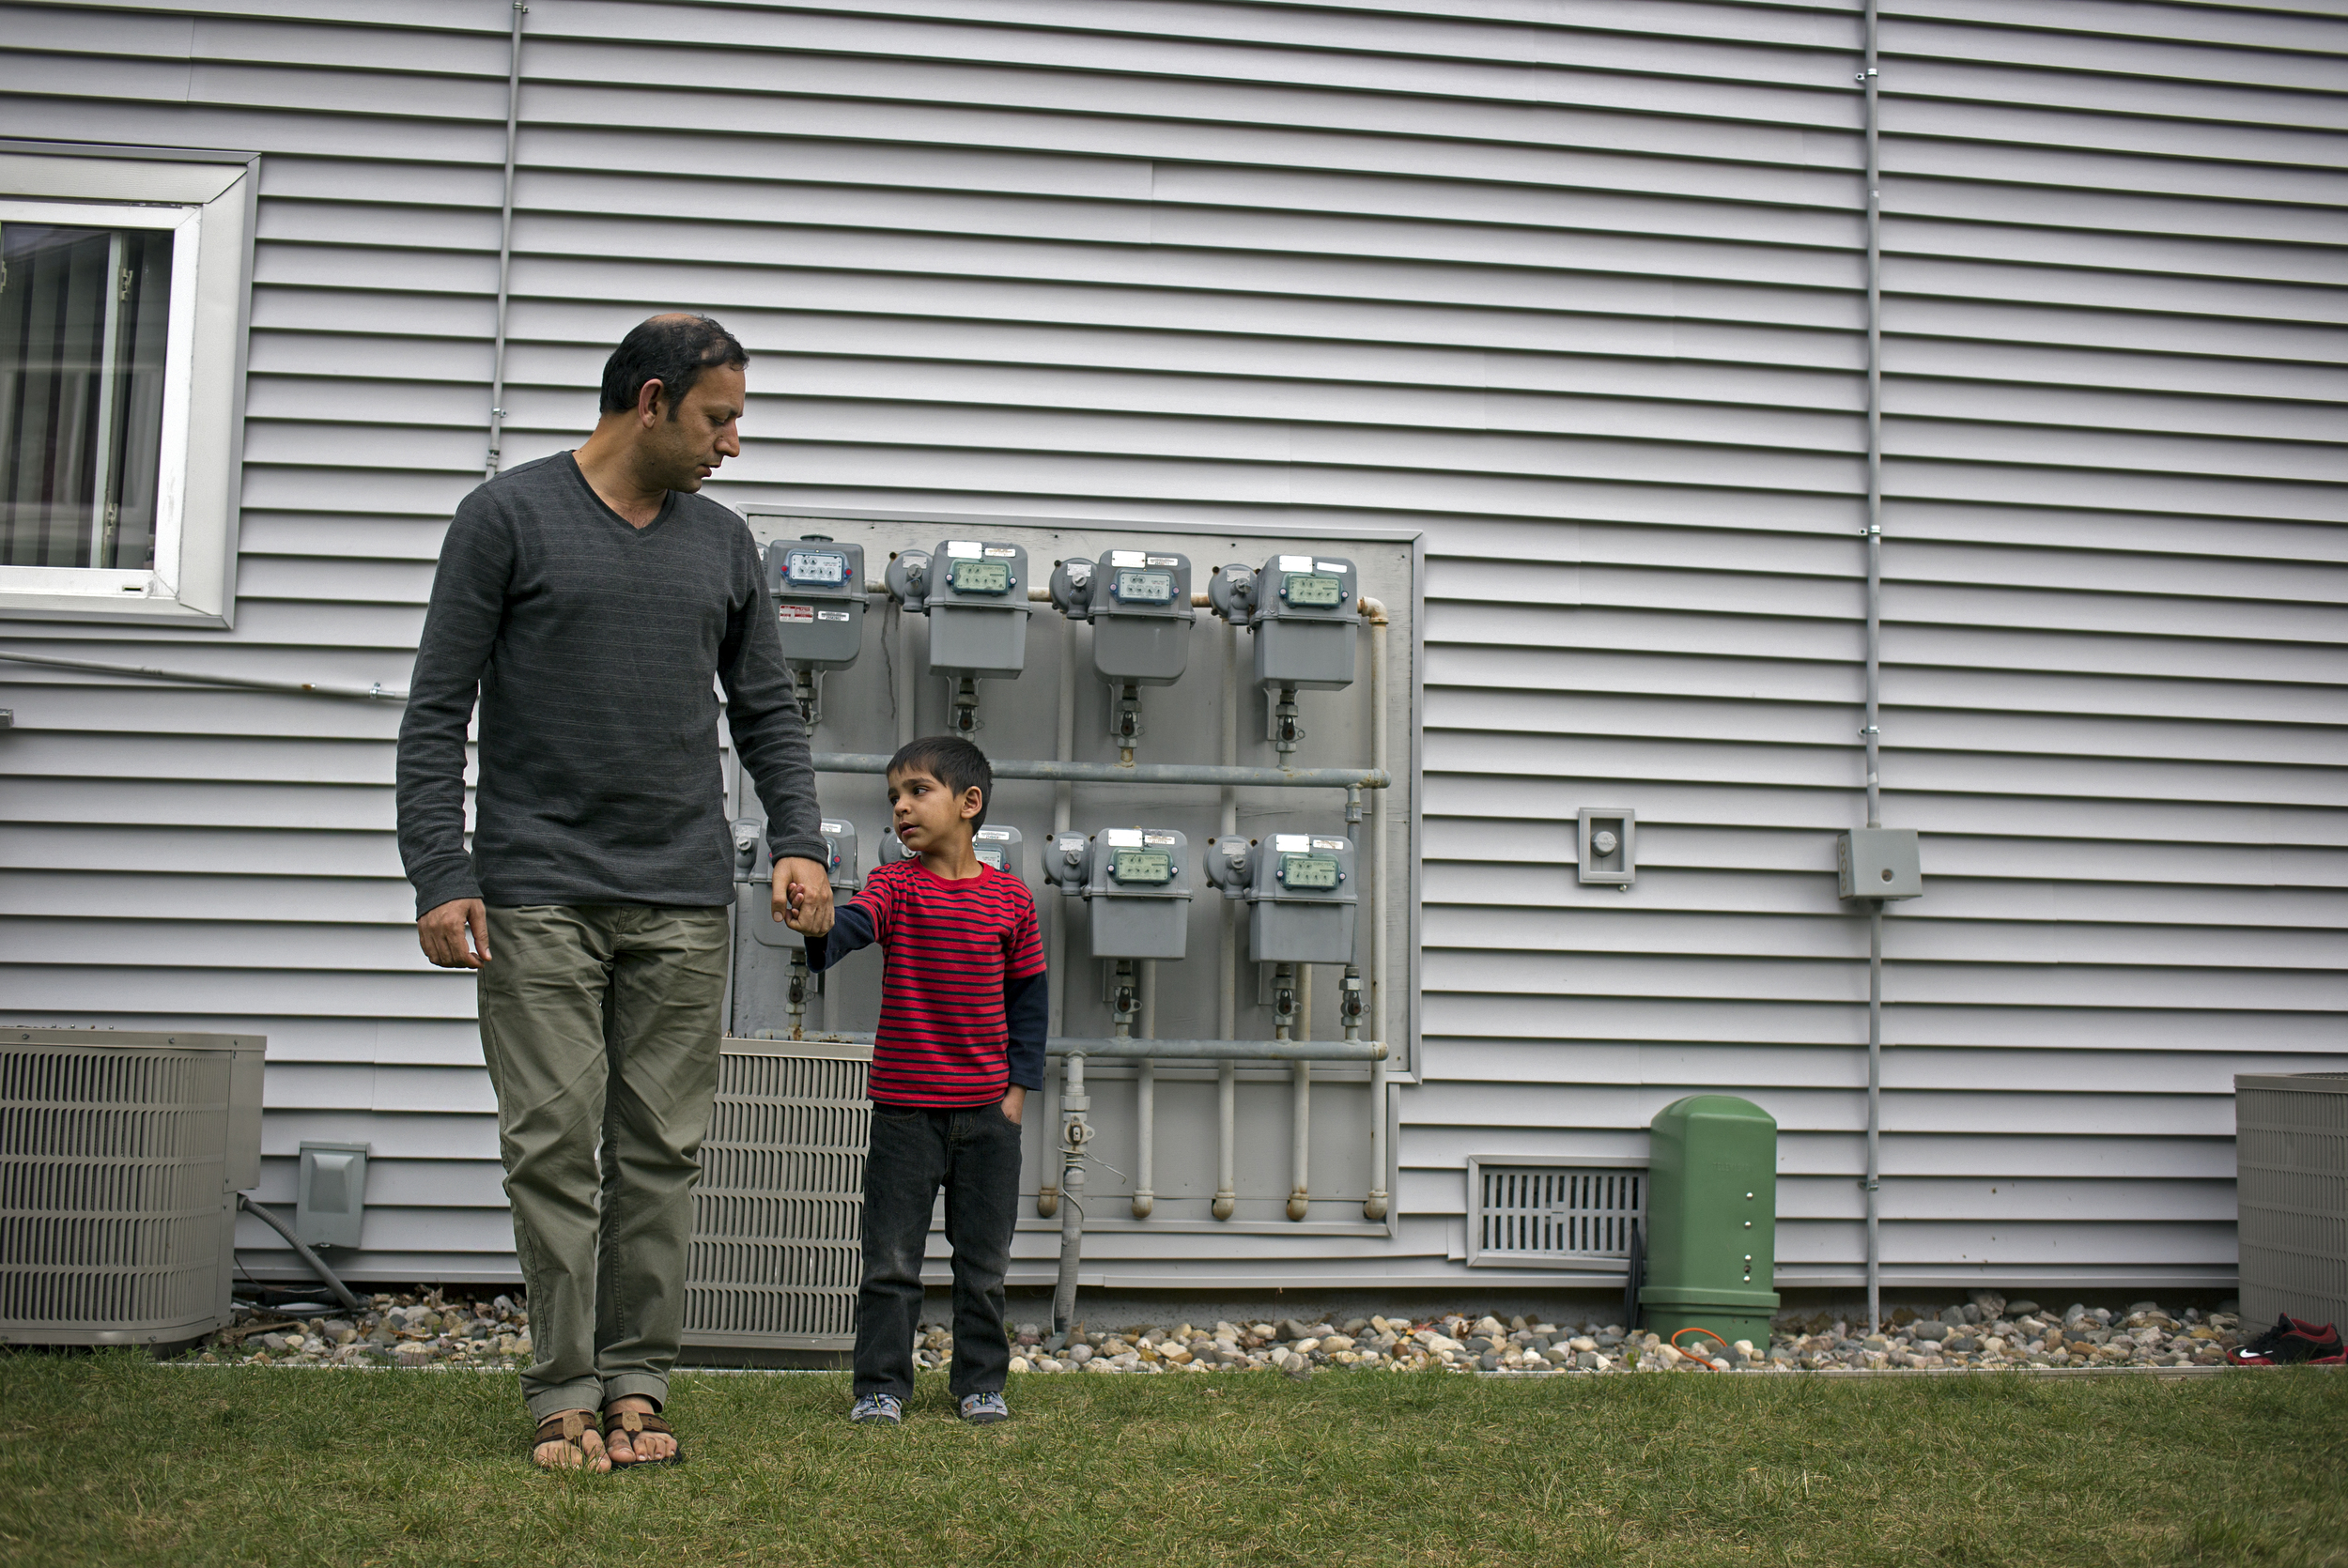 Ezatullah, 38, stands with his youngest son, Ehsanullah, 6, after he got hurt playing soccer with his brothers outside their apartment in Lansing, Mich.